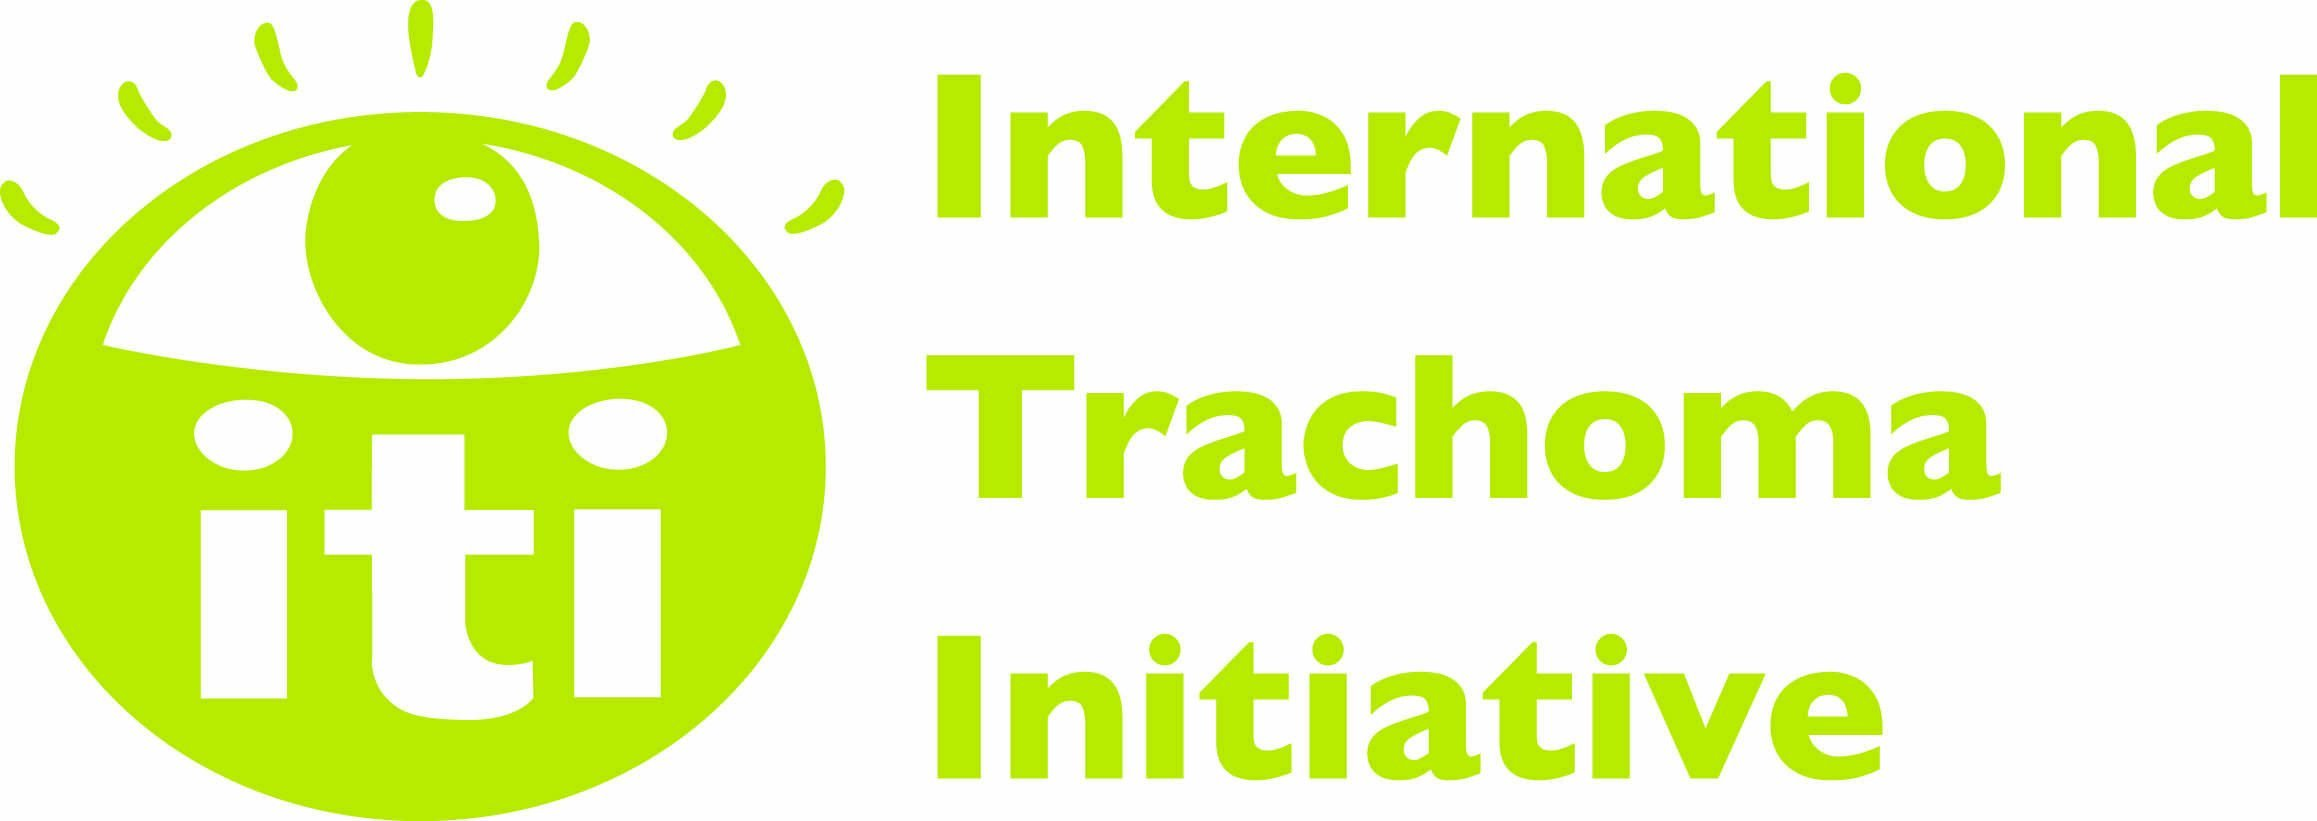 International Trachoma Initiative logo